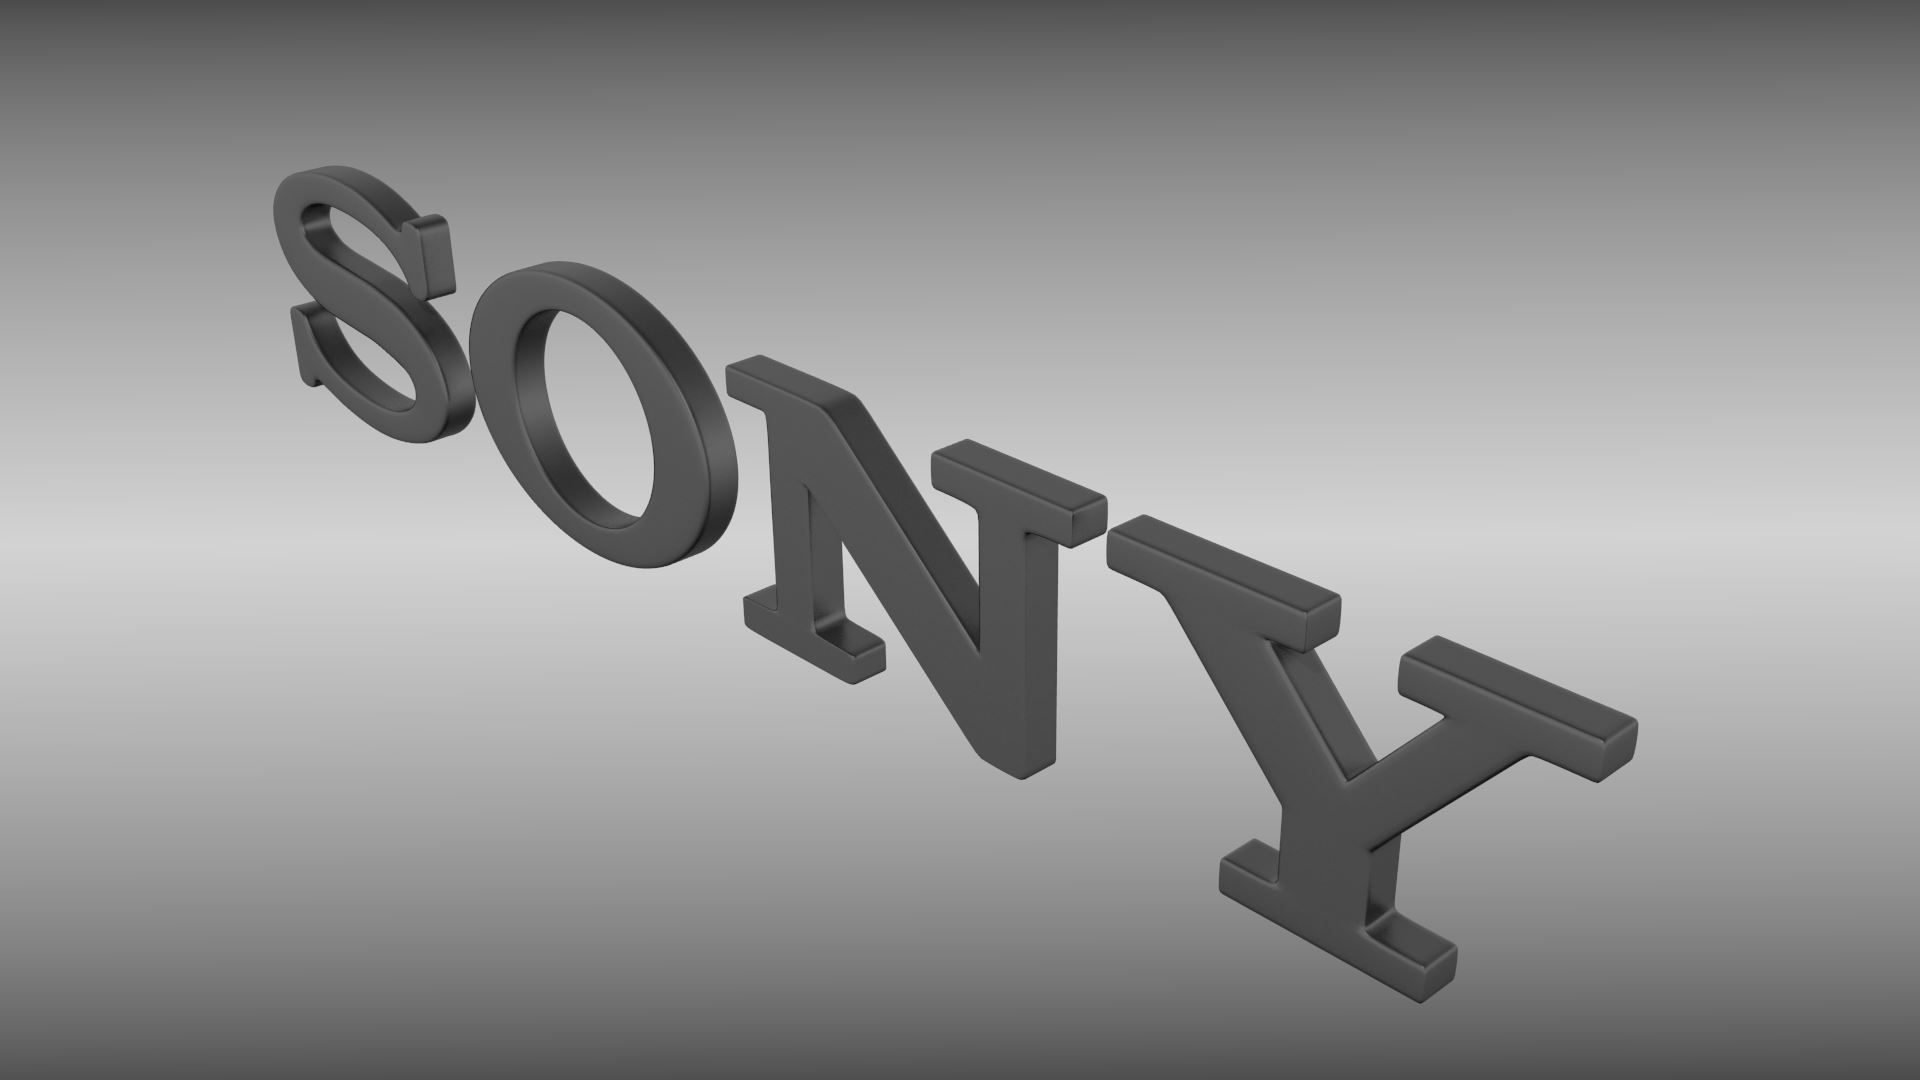 1920x1080 sony logo awesome images wallpaper pvg zc lf - Download Hd sony logo ...